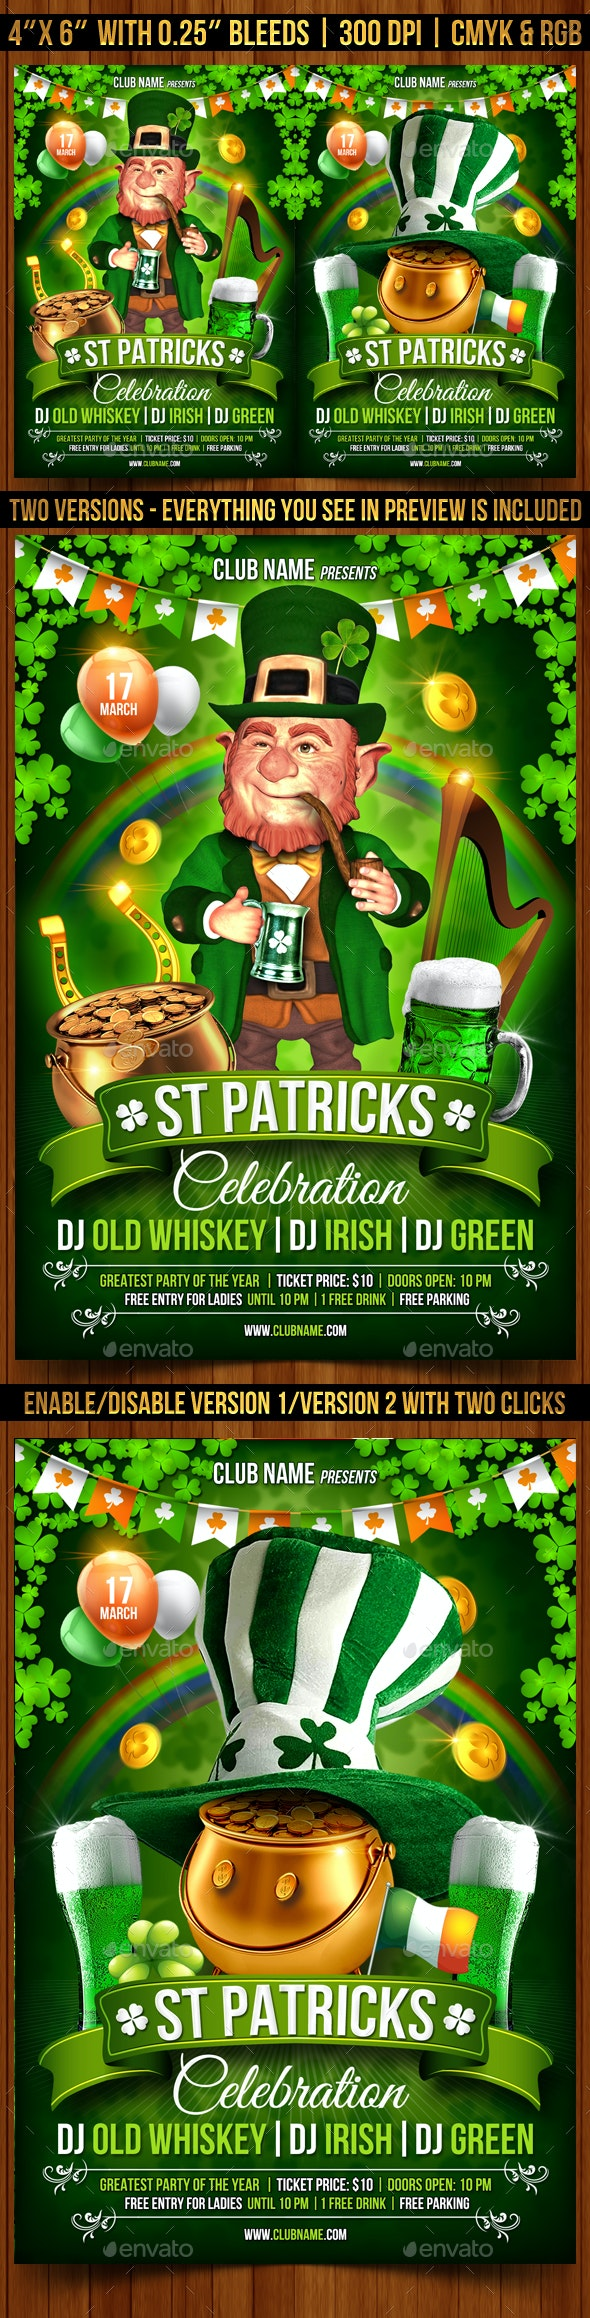 St. Patrick's Day Celebration Flyer Template - Clubs & Parties Events